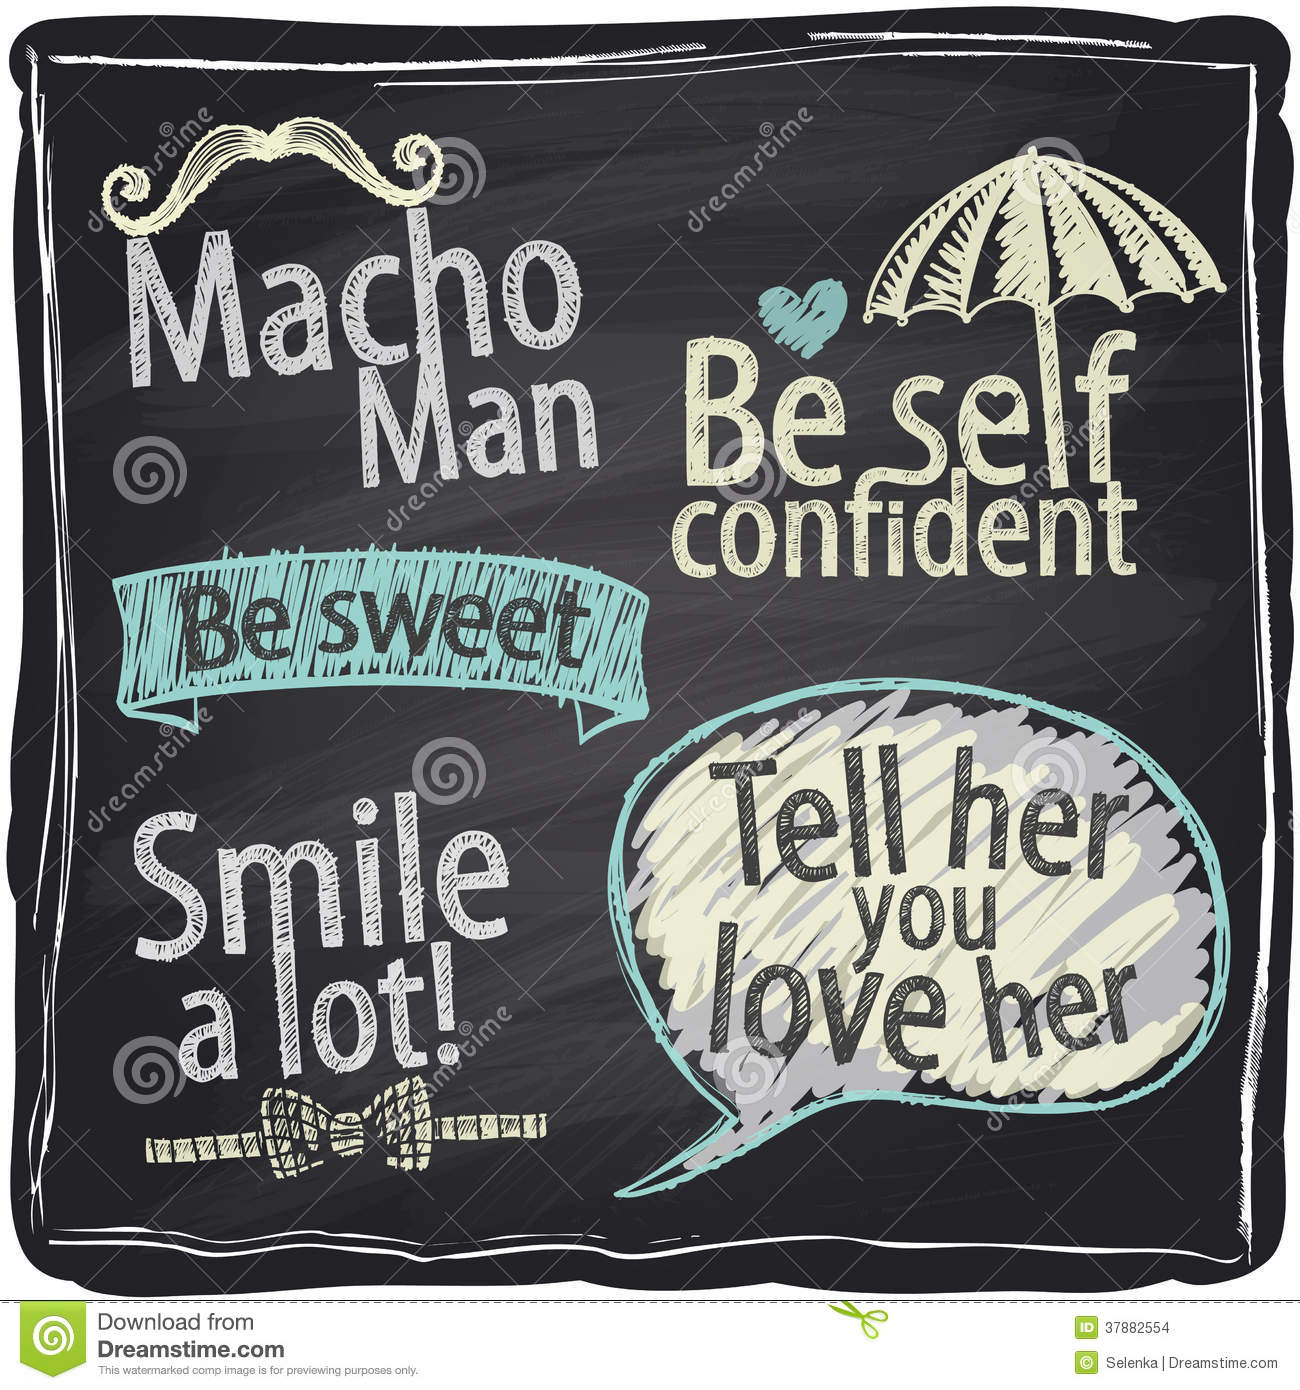 How to be a macho man chalkboard background.